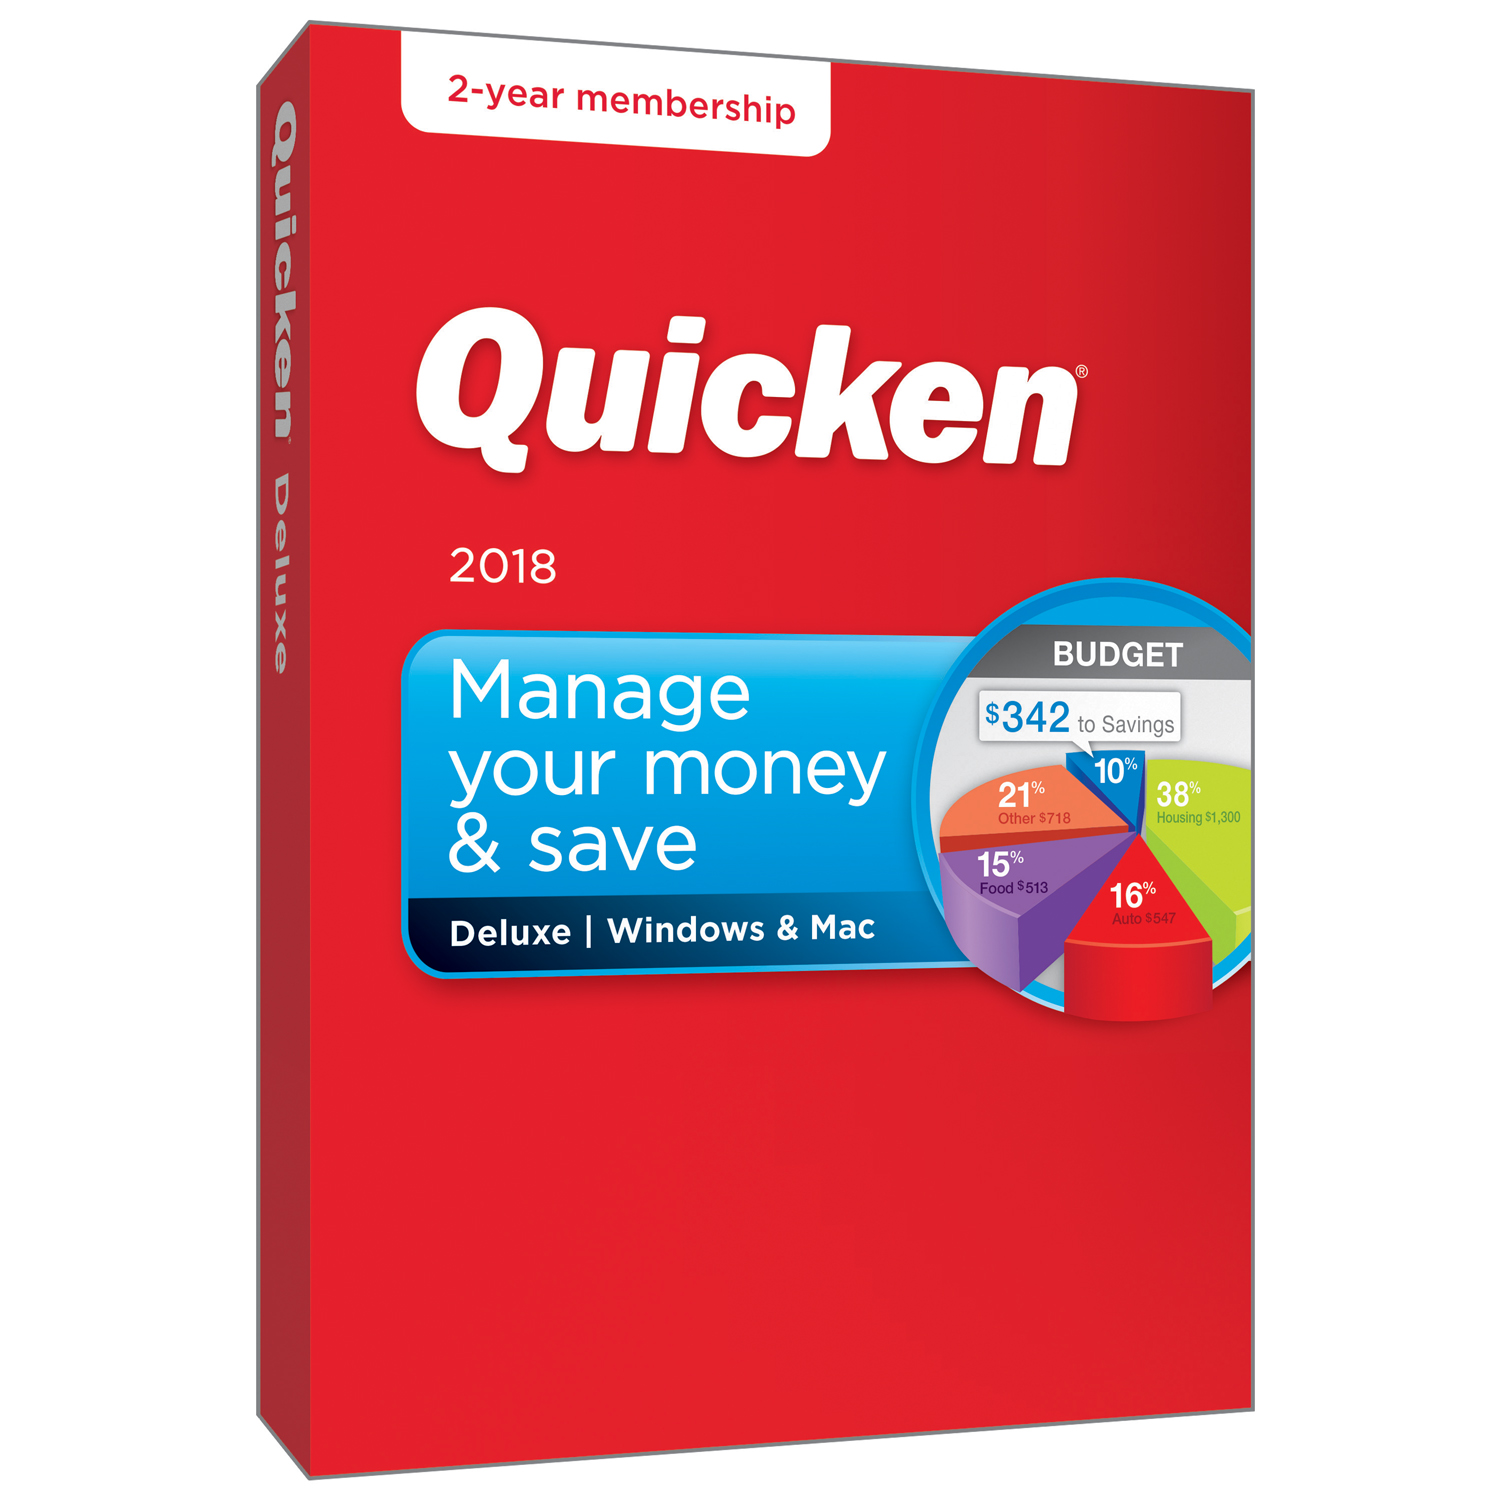 Quicken Deluxe 2 Year Win/Mac (2018 release)